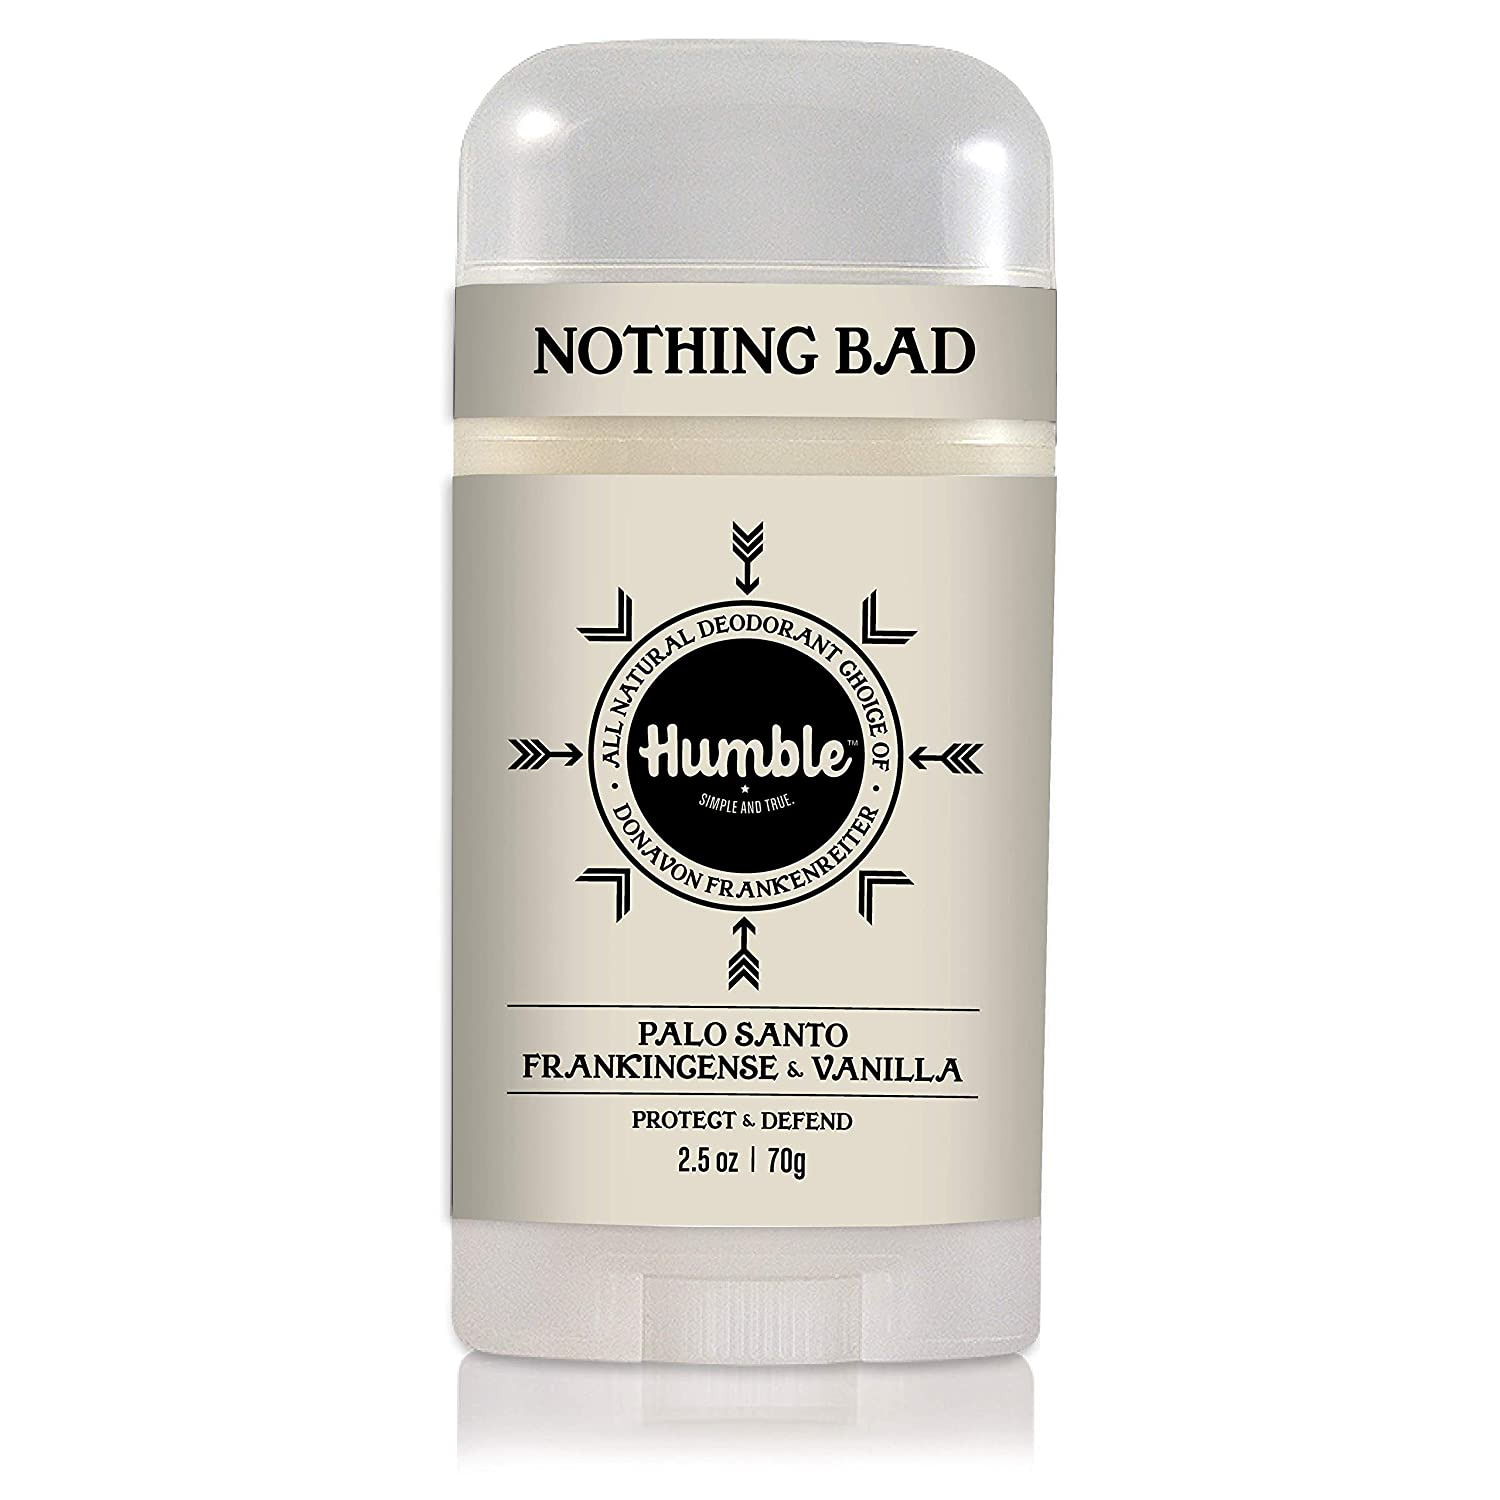 Humble All Natural Deodorant, Aluminum and Paraben Free, Cruelty Free Men's and Women's Deodorant, Palo Santo, Frankincense & Vanilla, Pack of 1